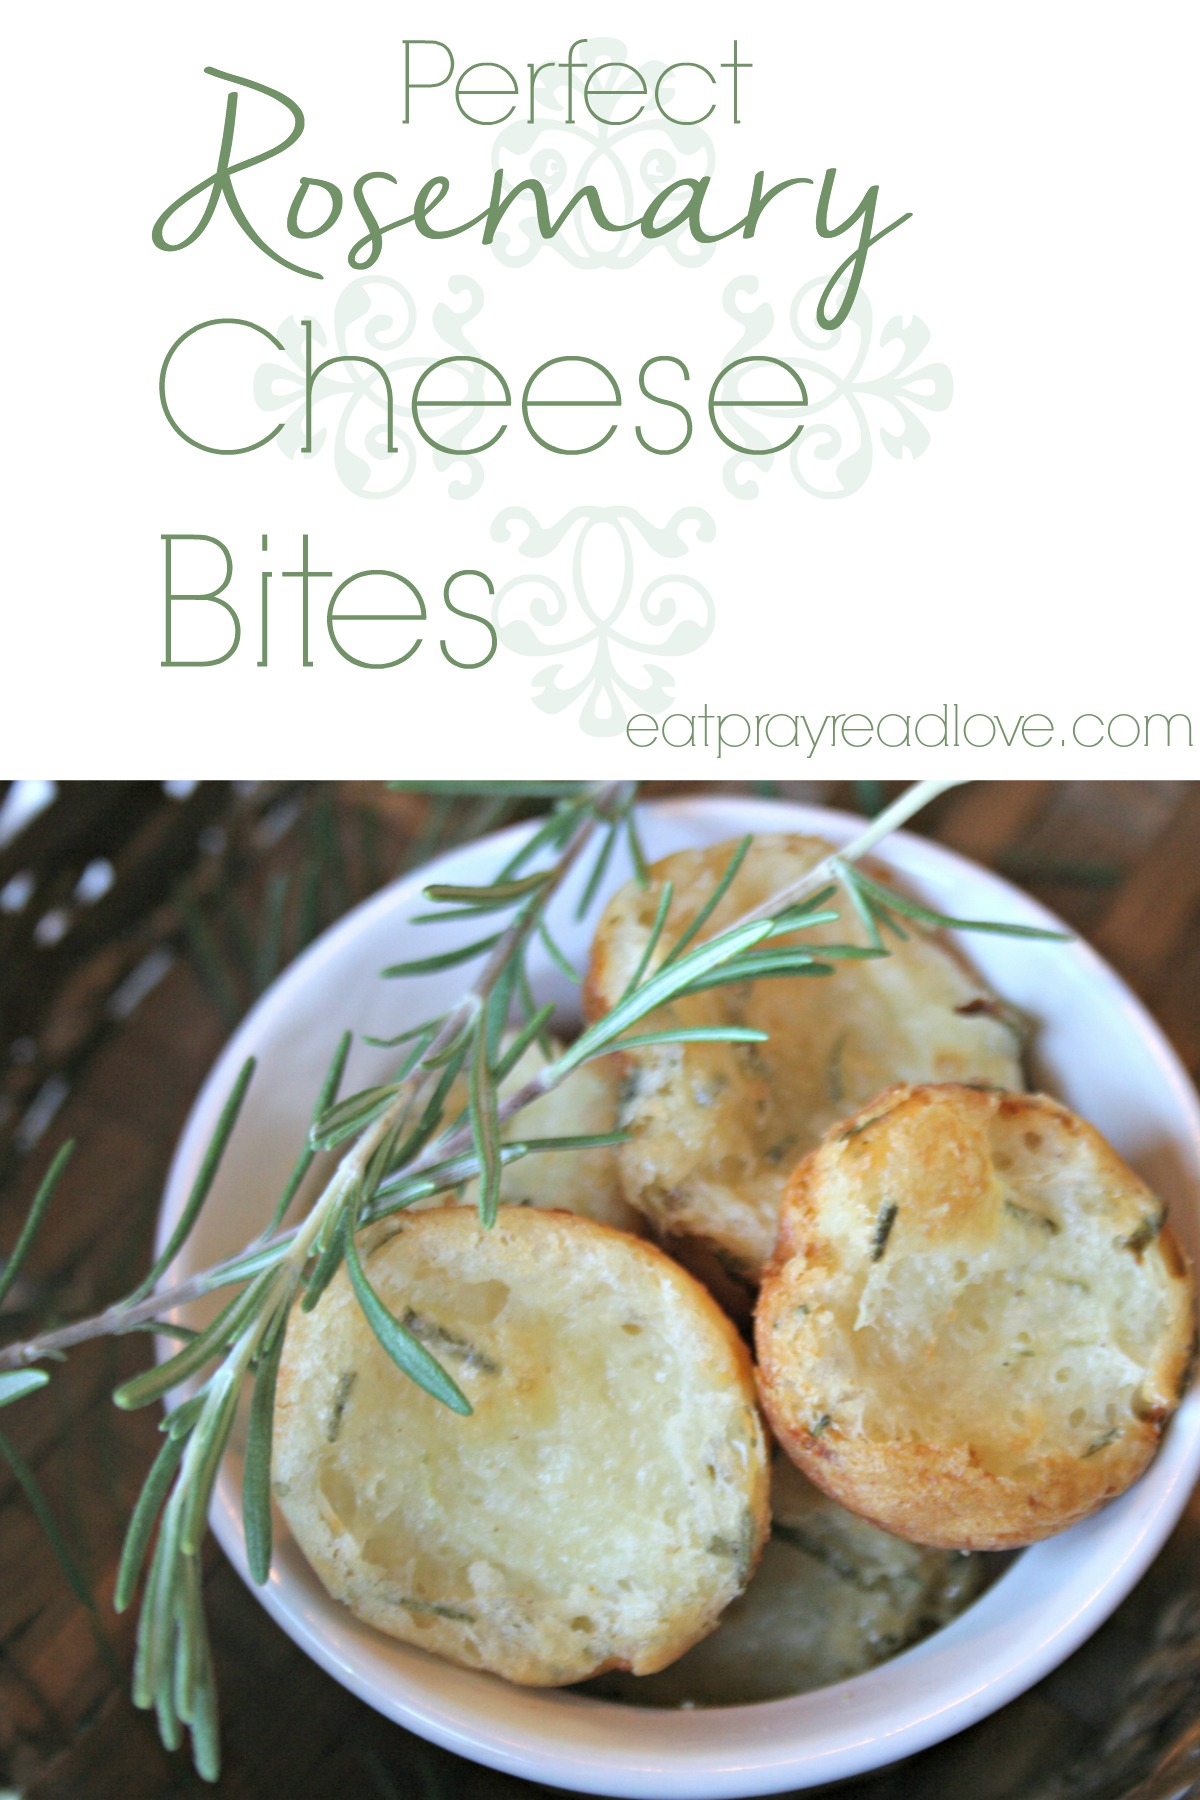 Perfect Rosemary Cheese Bites - Eat Pray {Read} Love